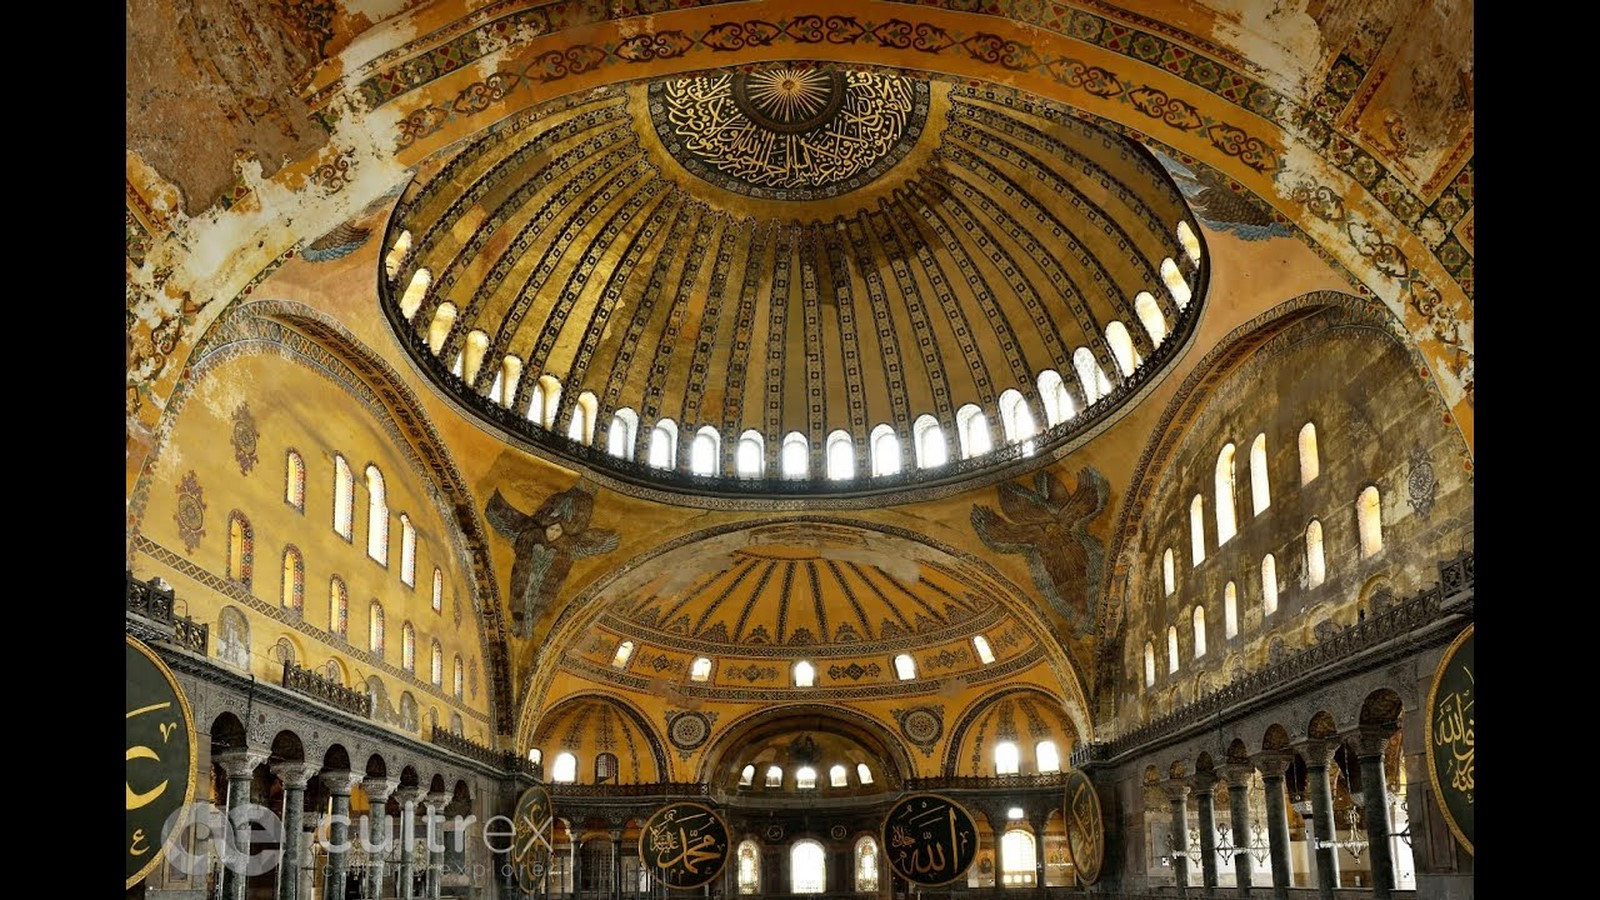 10 things you didn't know about Hagia Sophia - Sheet5